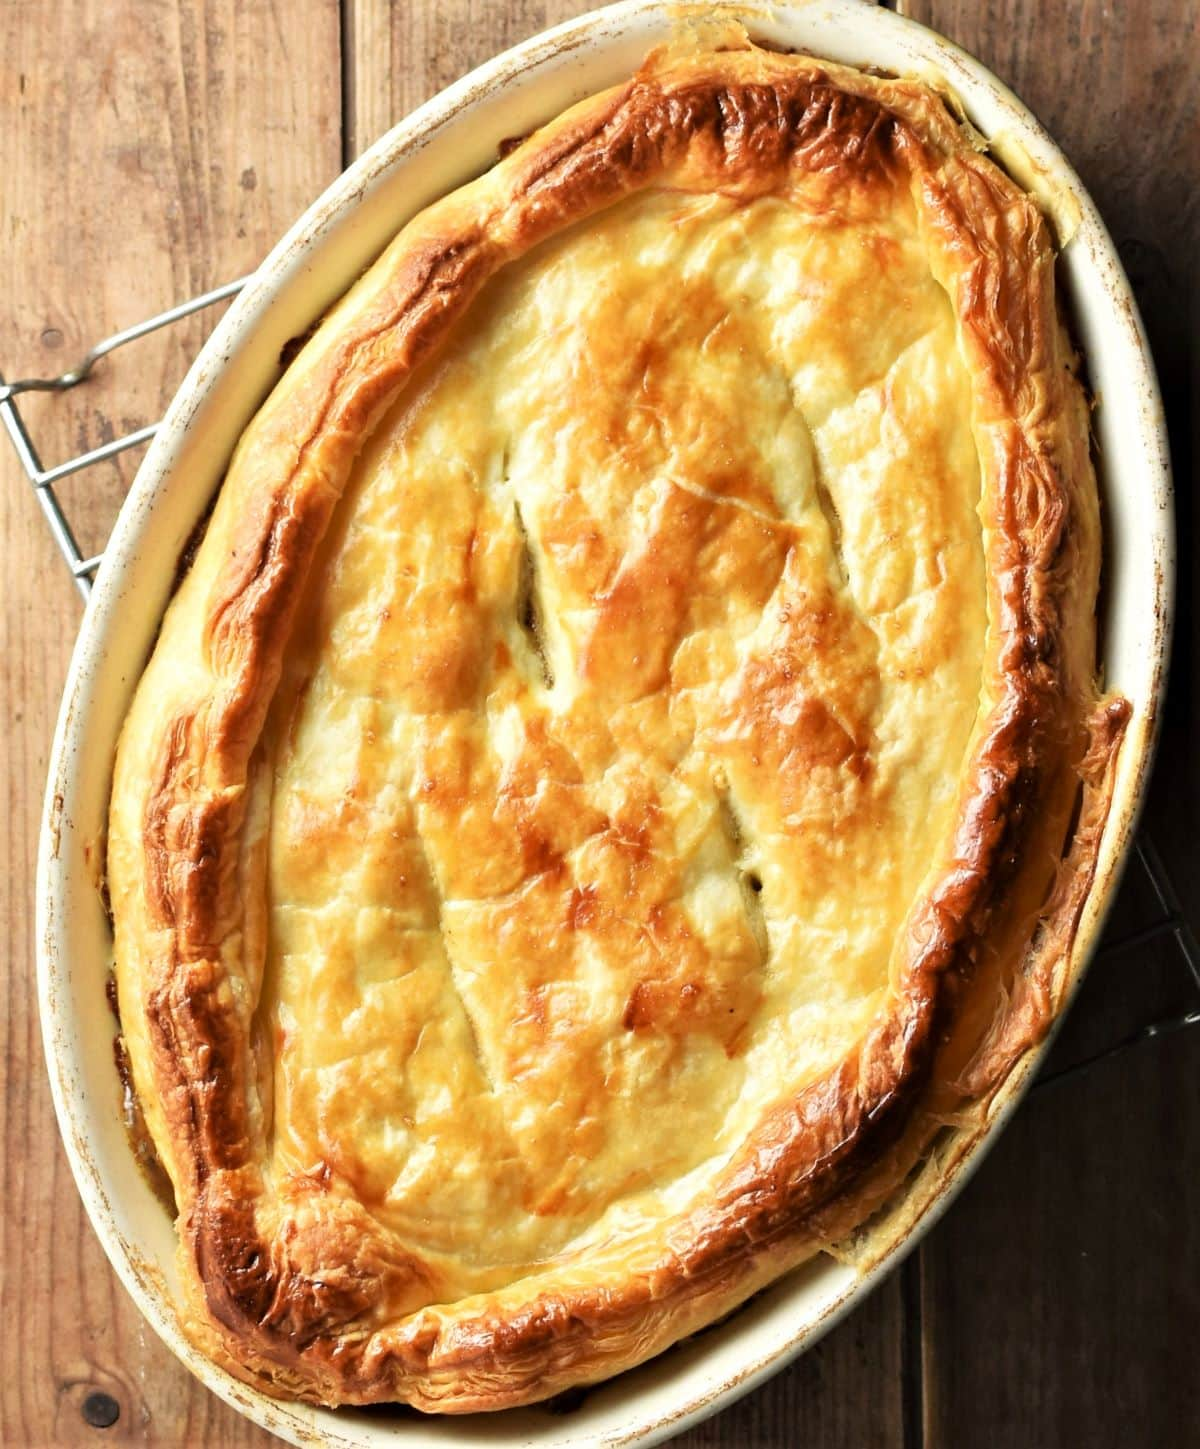 Top down view of pie with golden brown pastry in oval dish.